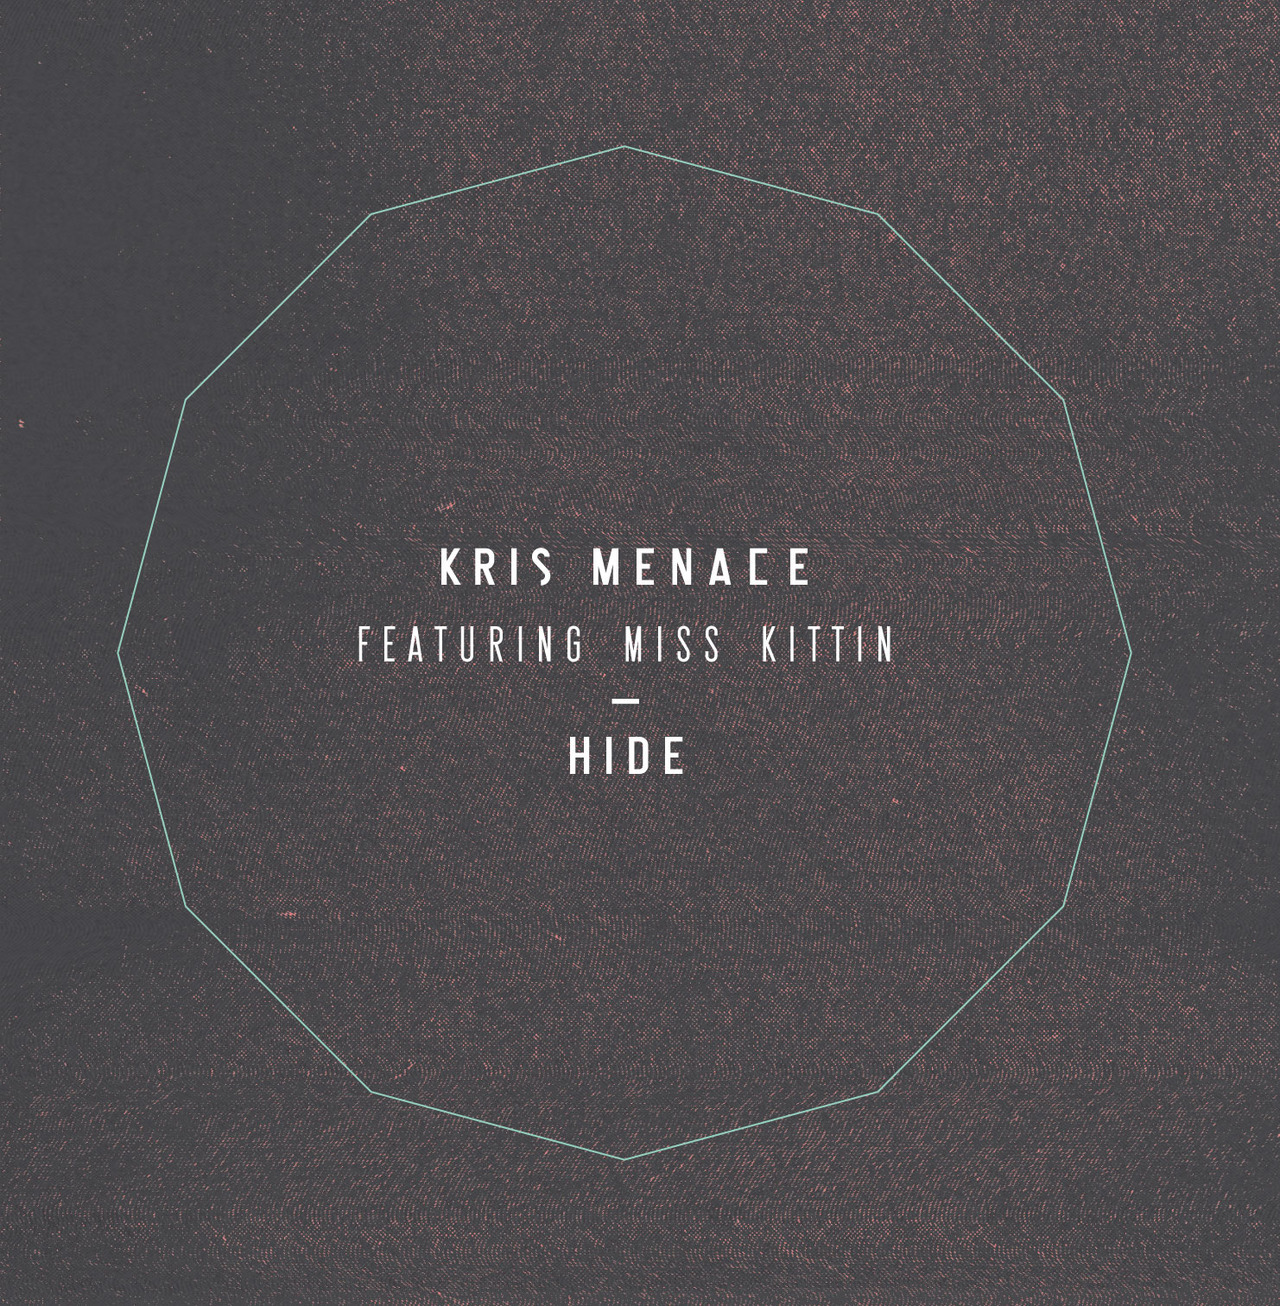 "Earlier this month, Kris Menace released his debut vocal album called Features. The full-length include esteemed guest vocalists such as Julian Hamilton from The Presets , Chicago house legend Robert Owens, Daft Punk collaborator Romanthony, German soul singer Xavier Naidoo, Chelonis R Jones (known for his work with Royksopp & Booka Shade) + Black Ghosts/Simian vocalist Simon Lord (also the singer for Justice´s ""We Are Your Friends"").""Making 'Features' was so much more than just my passion. It became an integral a part of me"" says Kris, who's prodigious influence on contemporary electronic music has been well documented. Having produced, written + remixed artists such as LCD Soundsystem, Depeche Mode, Metronomy, Fred Falke, Felix Da Housecat, PNAU & Moby to name a few.  On the 1st single, ""Hide"", Kris Menace teams up with the fabulous Miss Kittin. 1st time director Mathieu Bétard created the animated video for the song, working with the award winning Parisian production house Quad/WizzProd. The ""Hide"" will see the light on 12.03 featuring remixes by Undo, Maethelvin, Alexander Maier, Nhar & Pwndtiac.   Hide (Nhar remix) // download       Hide (Alexander Maier remix) // download"